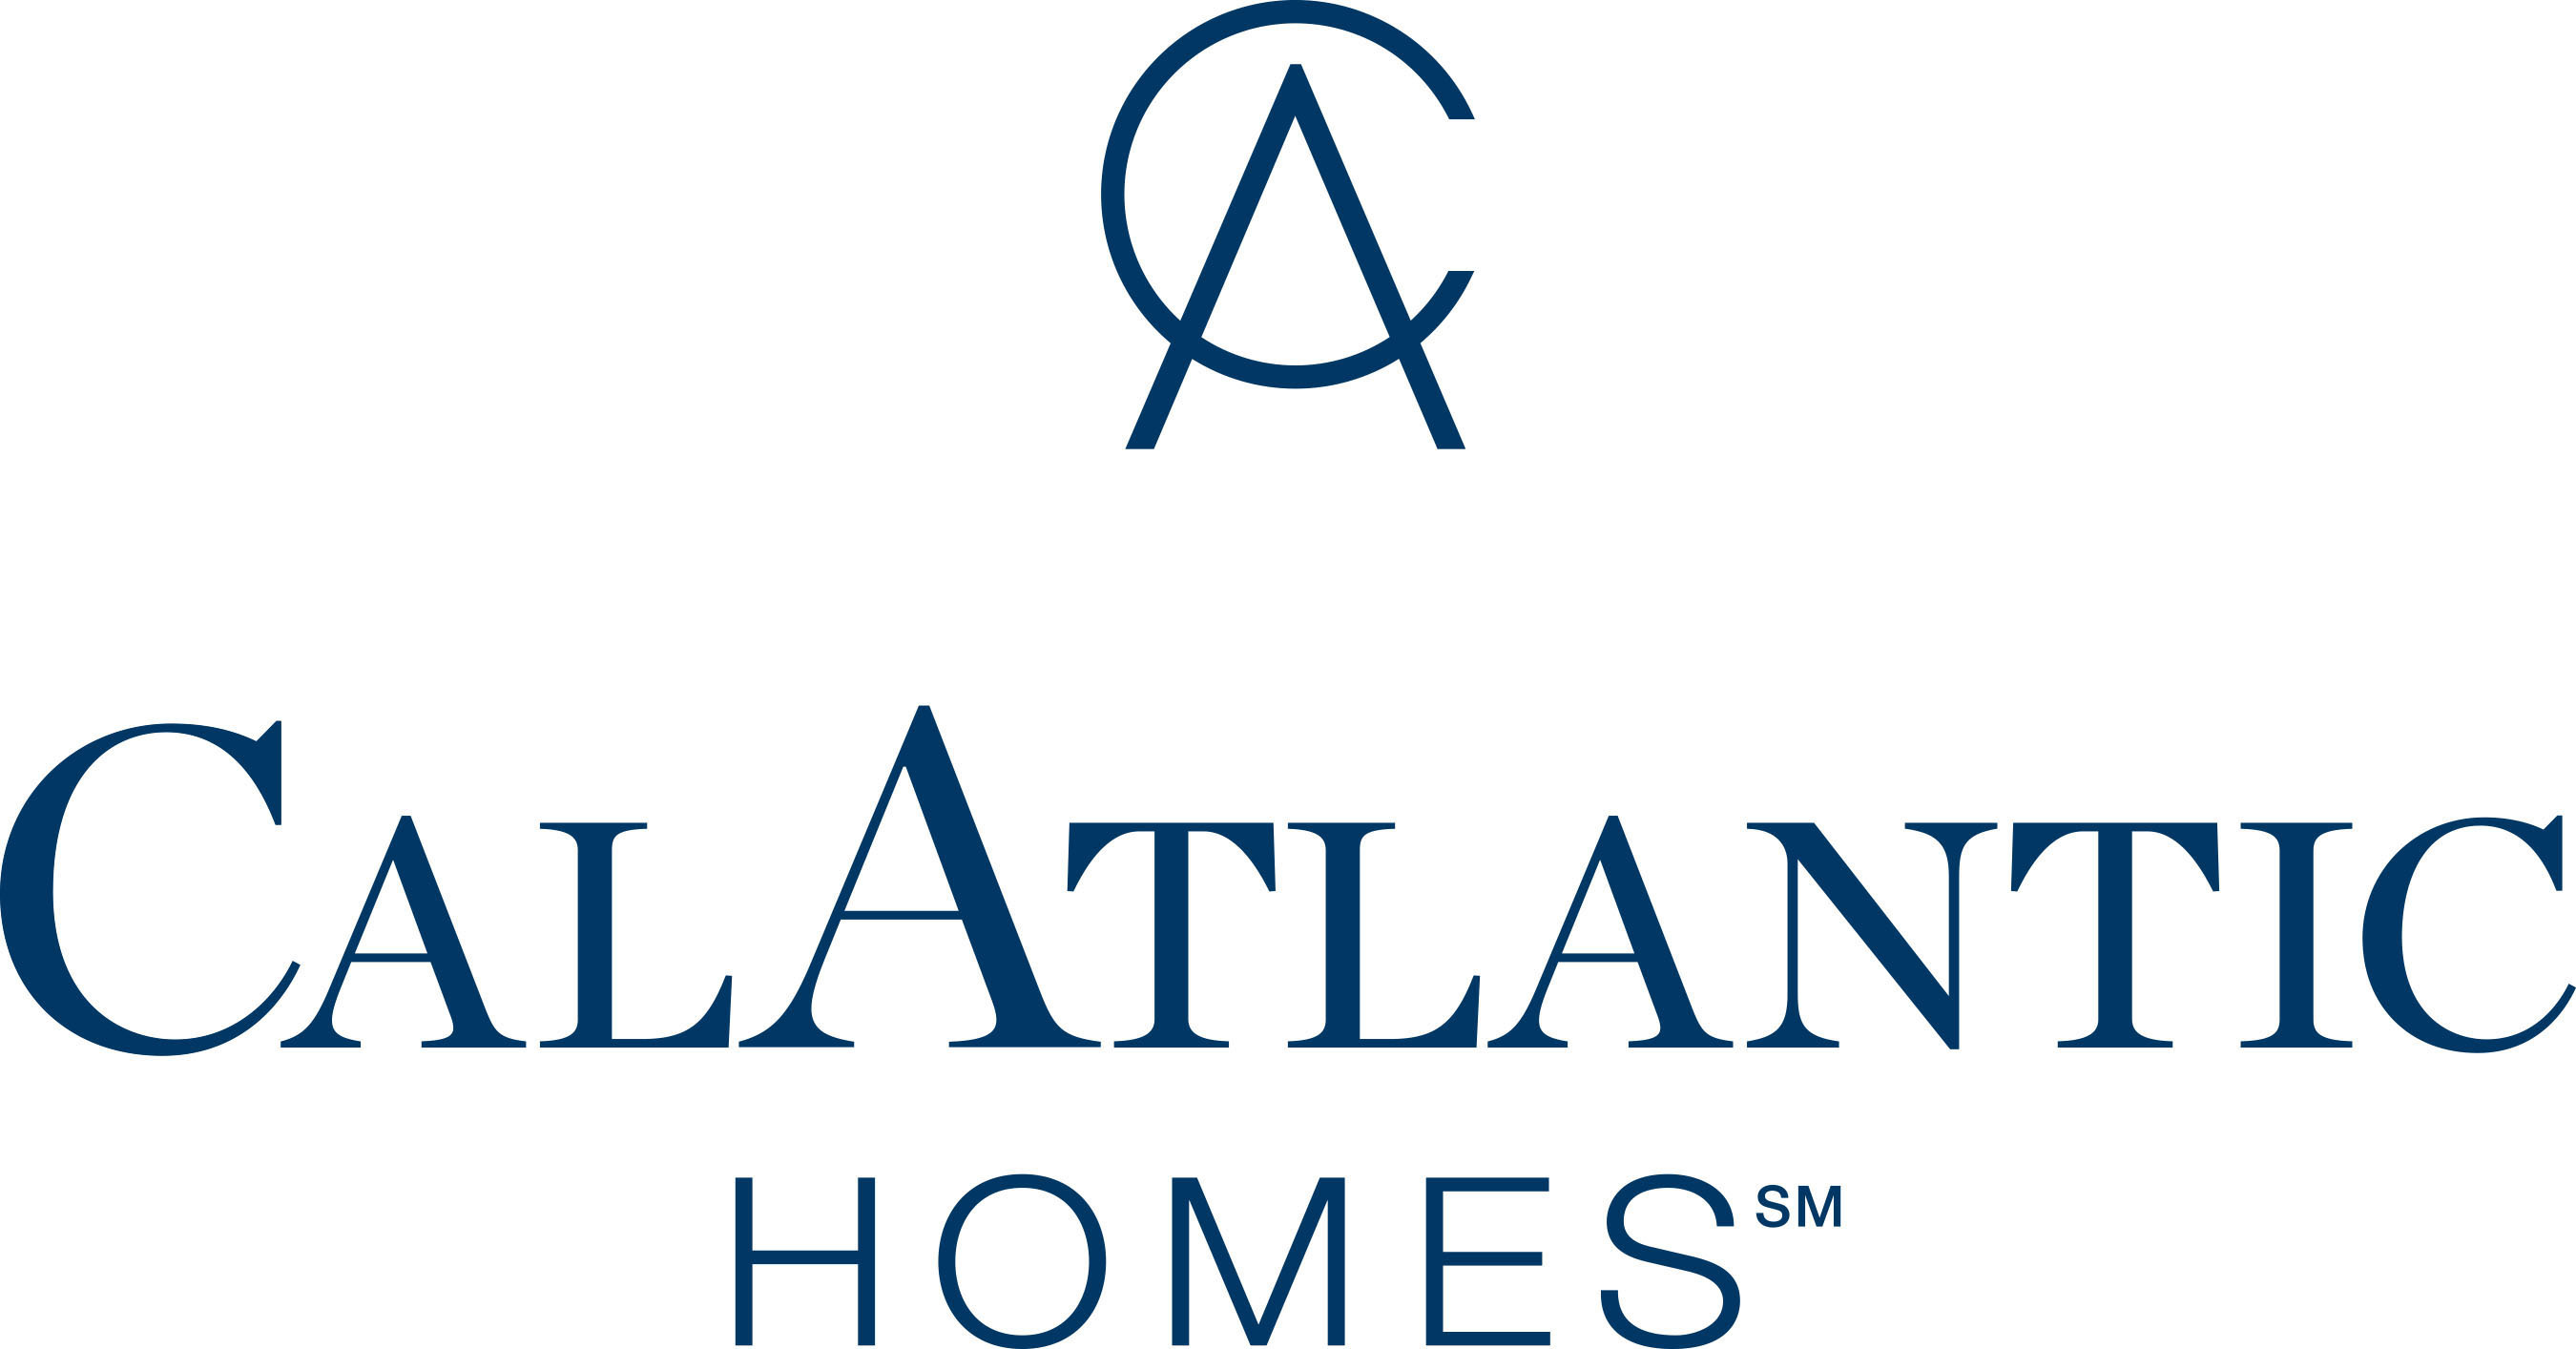 Calatlantic Homes Honored With Highly Coveted Builder Of The Year By Home Builders Ociation Greater Austin